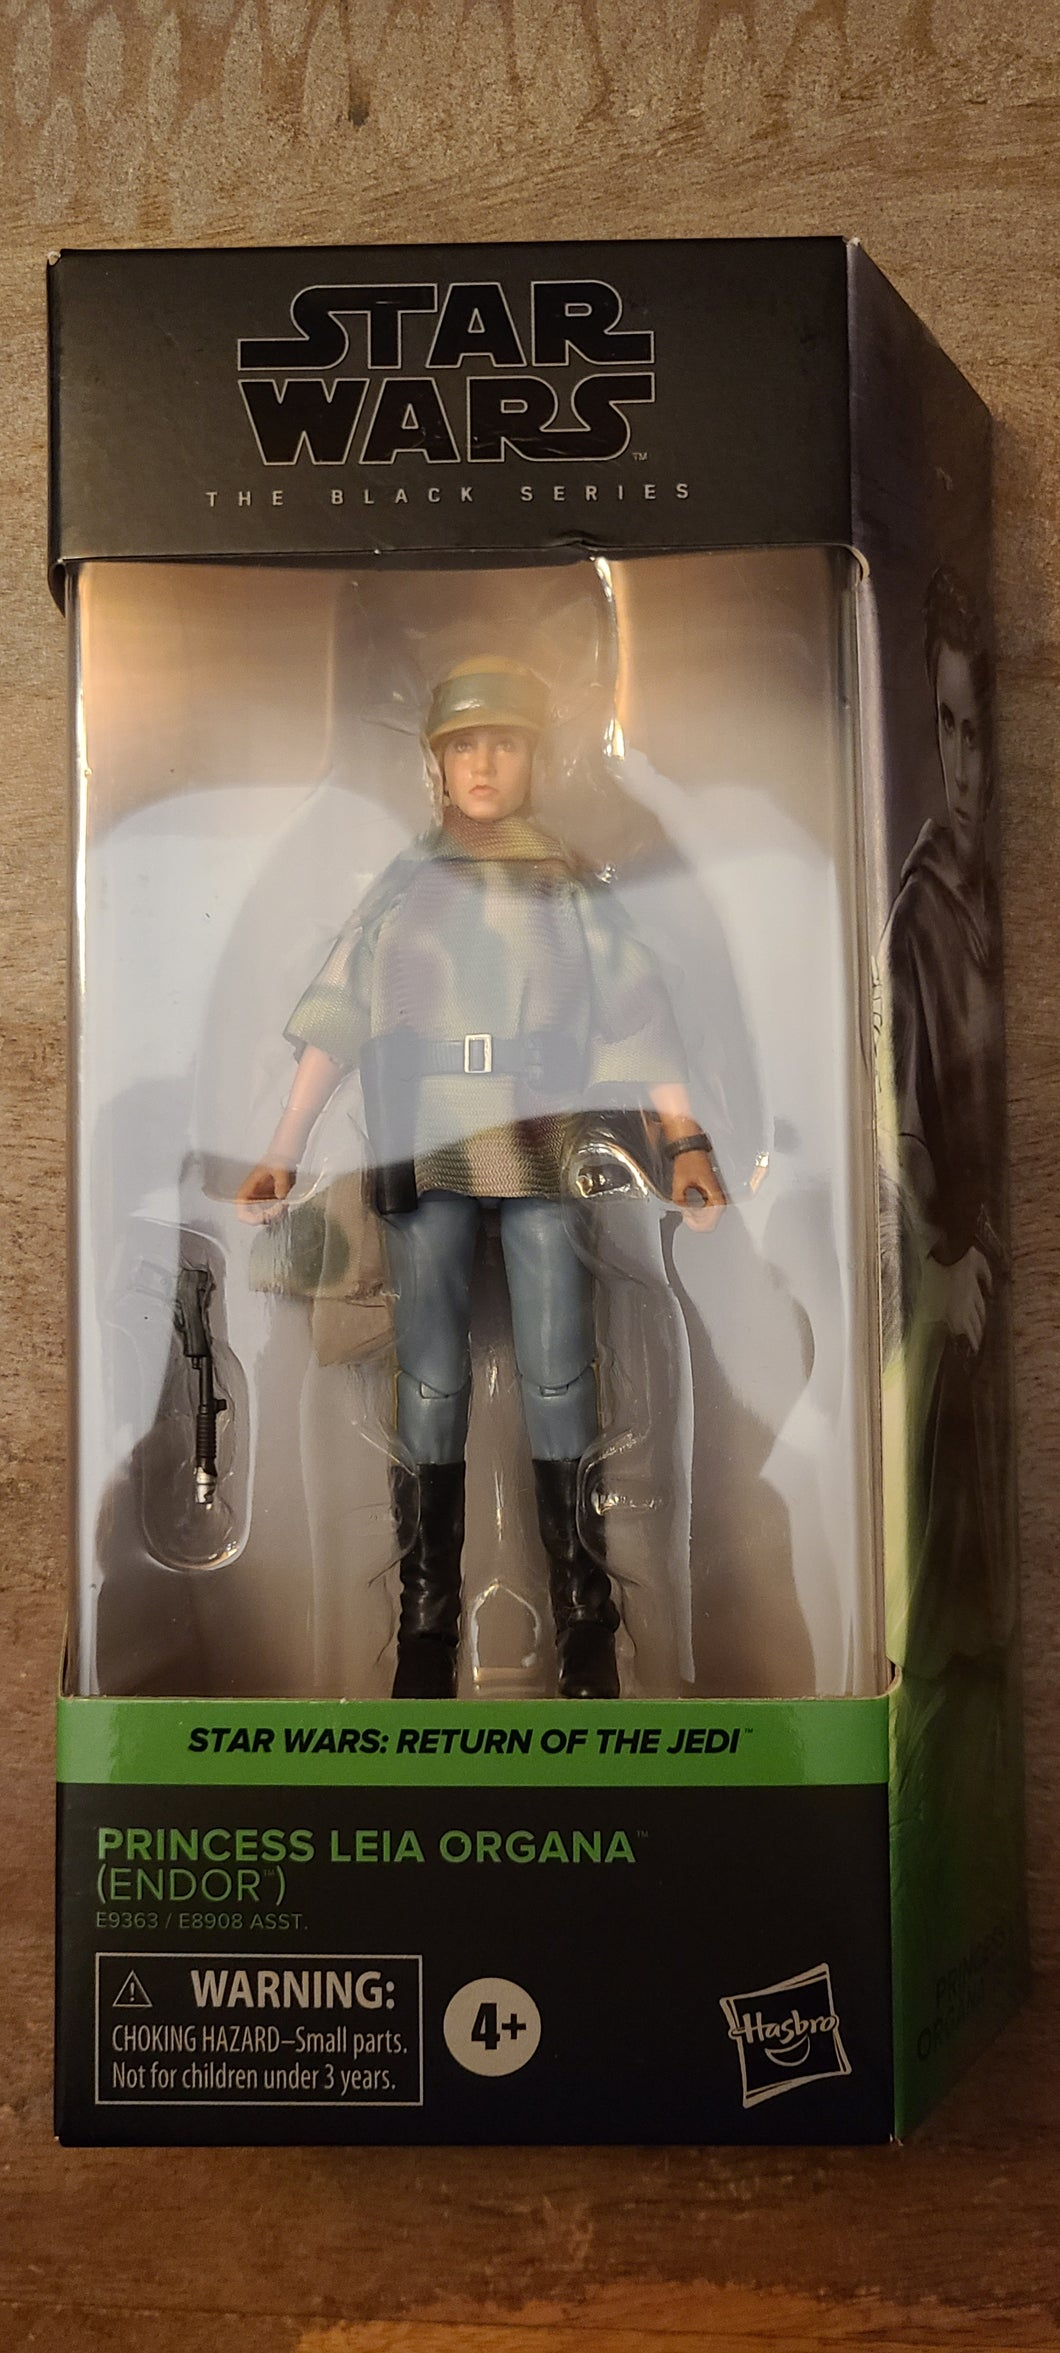 Star Wars Black Series Princess Leia Organa (Endor)